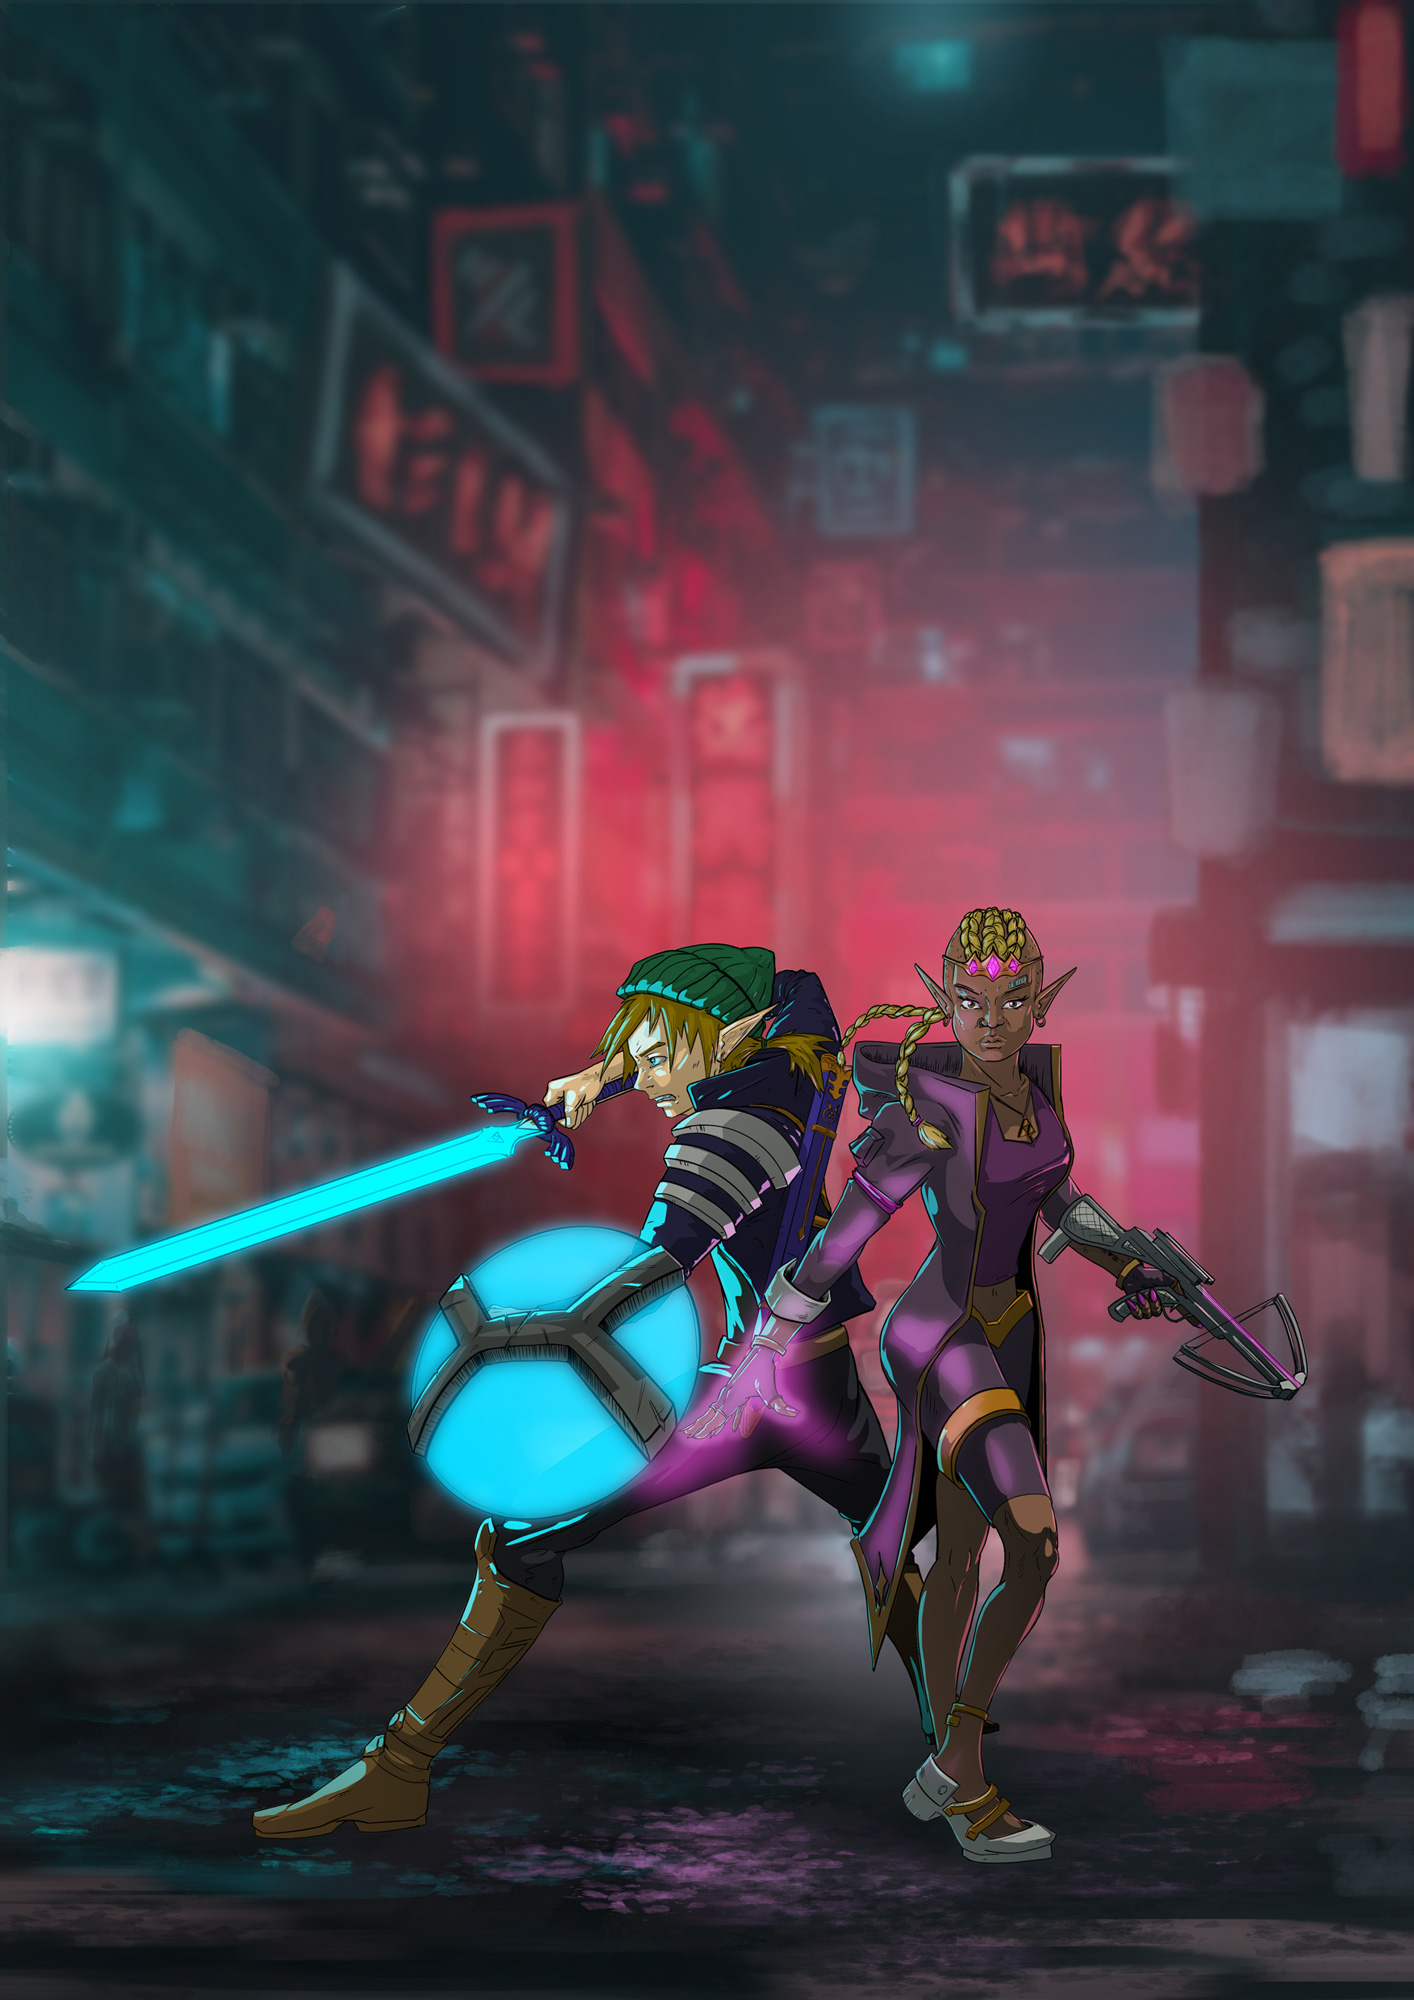 Cyerpunk-Link-and-Zelda-11-web.jpg